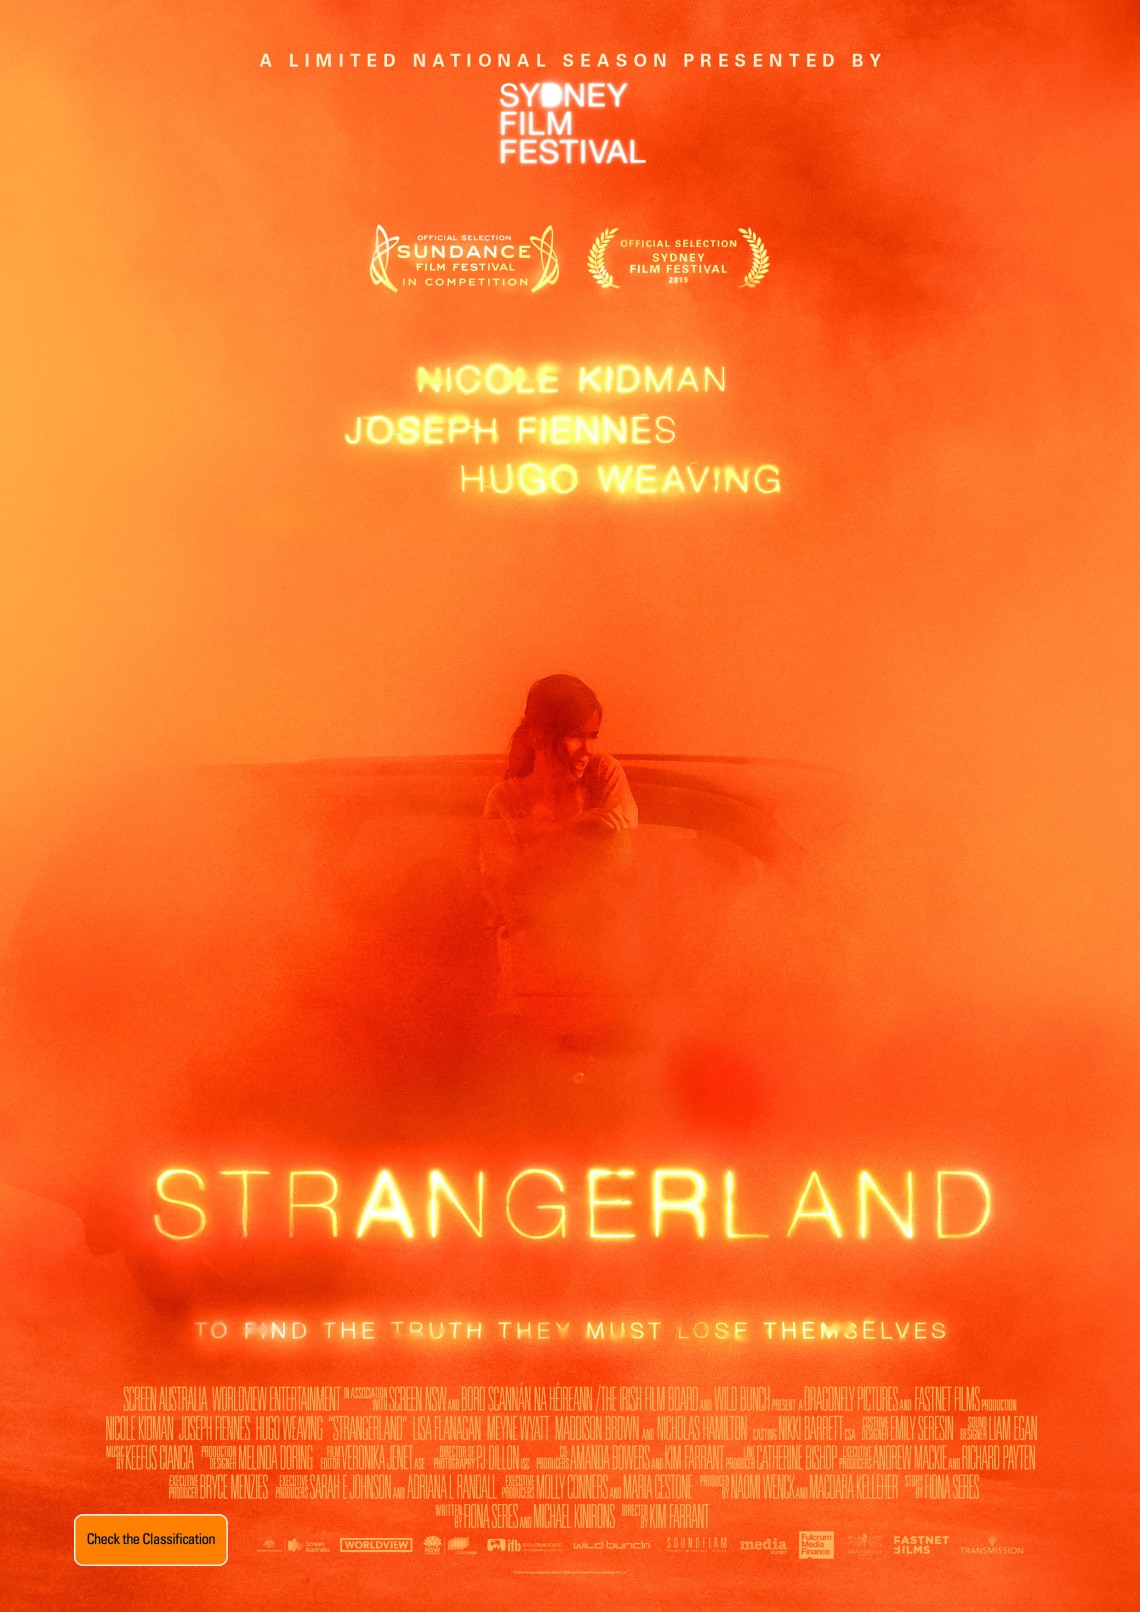 Strangerland_SFF_OfficialSelect_A4poster